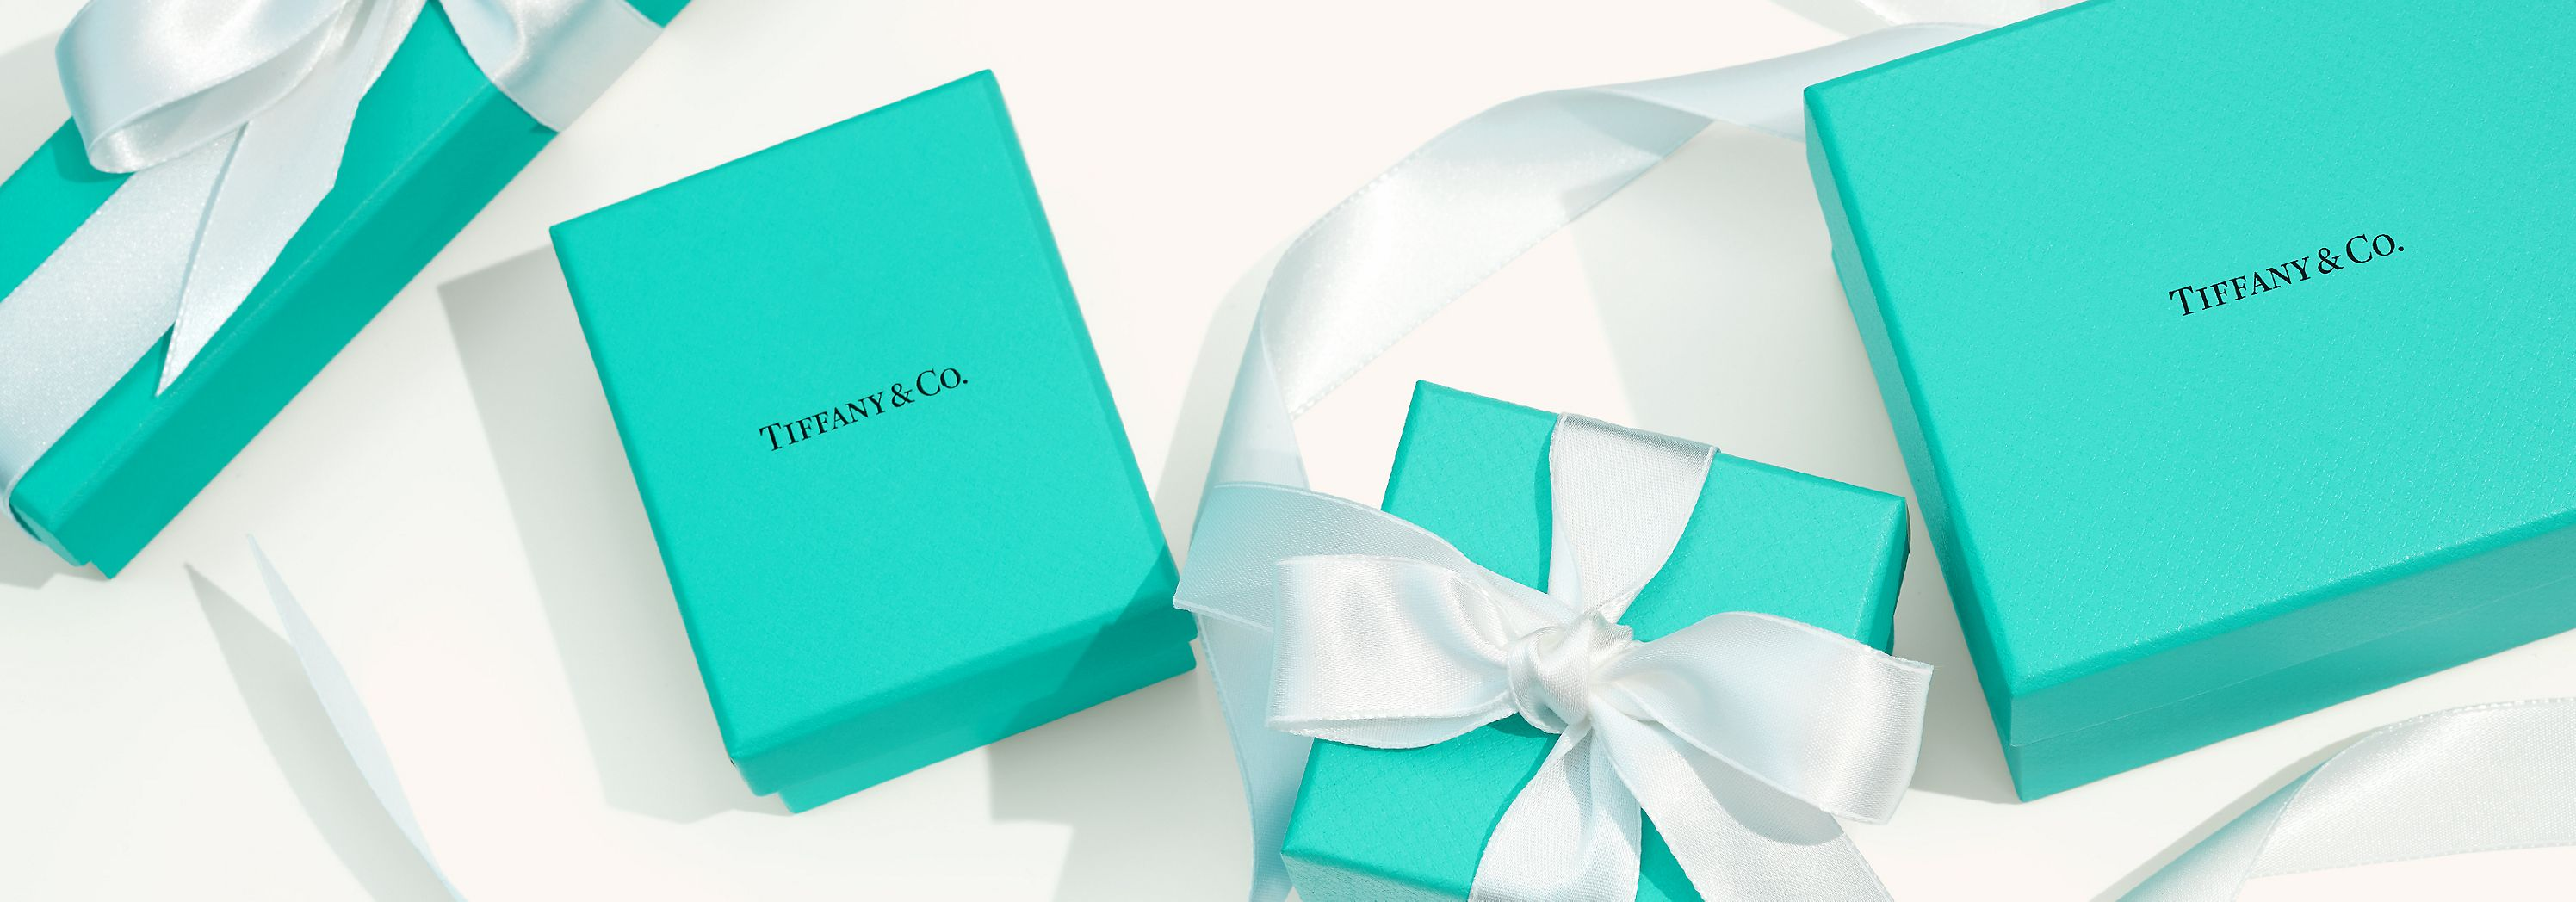 78660143d1752 The World of Tiffany | Tiffany & Co.